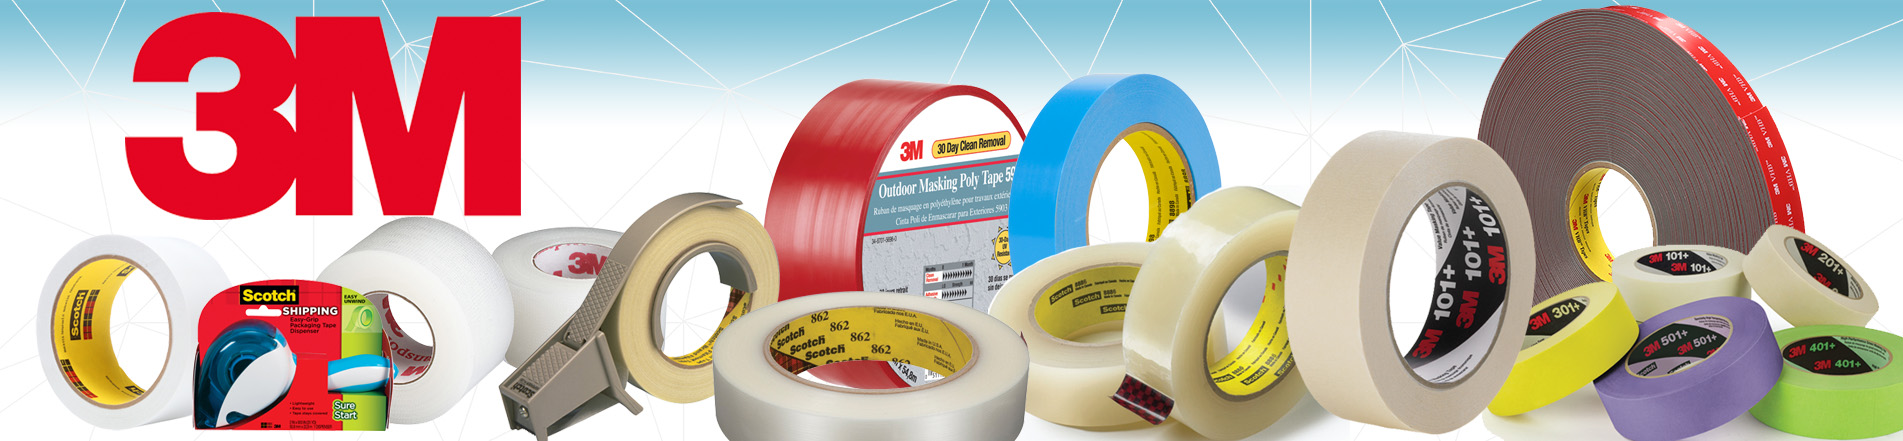 3M Janitorial & Packaging Supplies